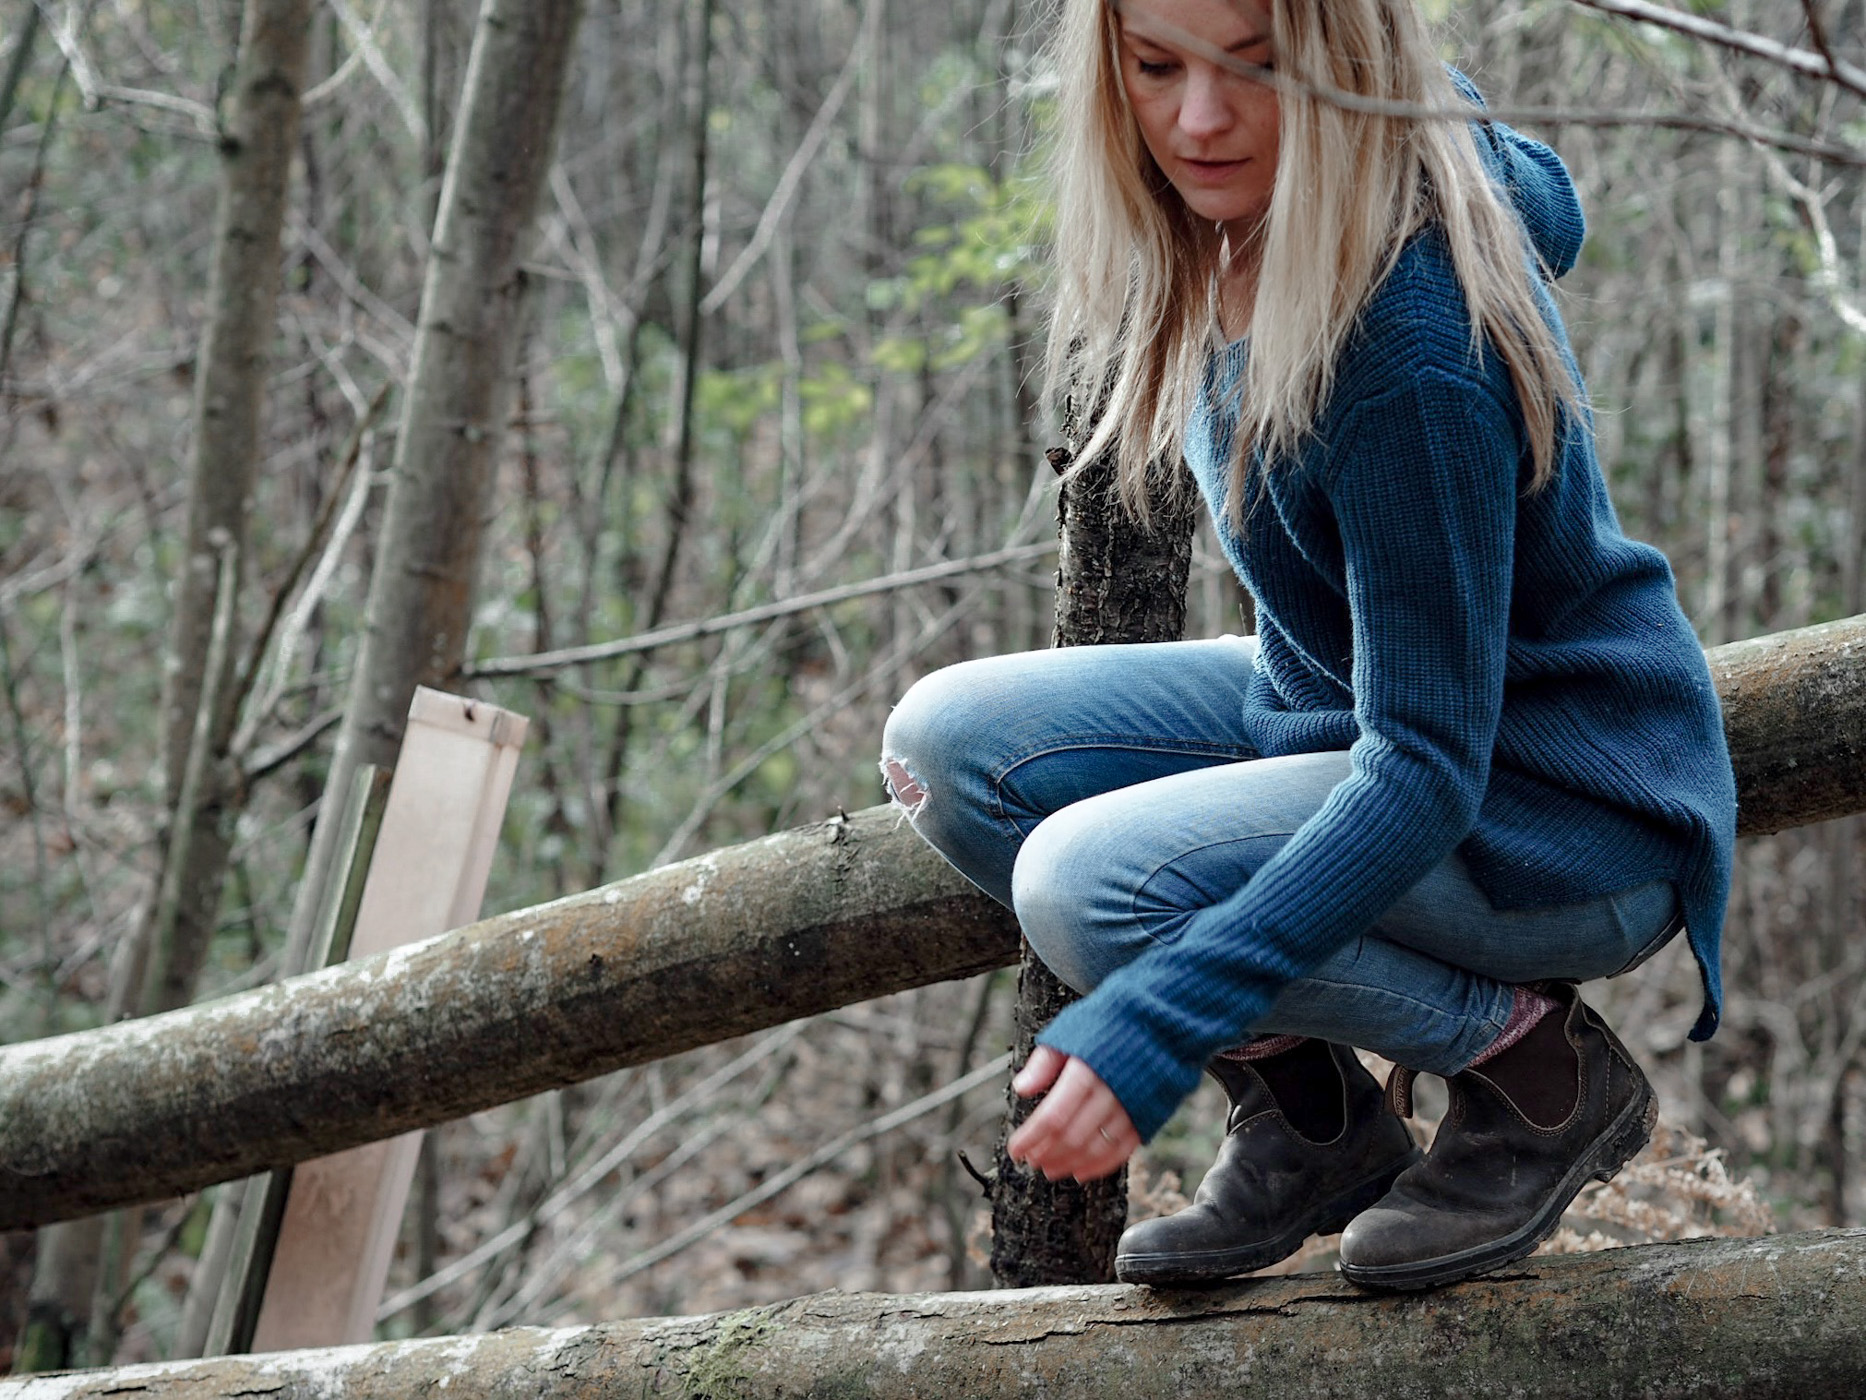 The Woodland Wife - WoolOvers - Womens Pure Wool Clothing - Life in the woods - Slow Living - You're never too old to climb a tree